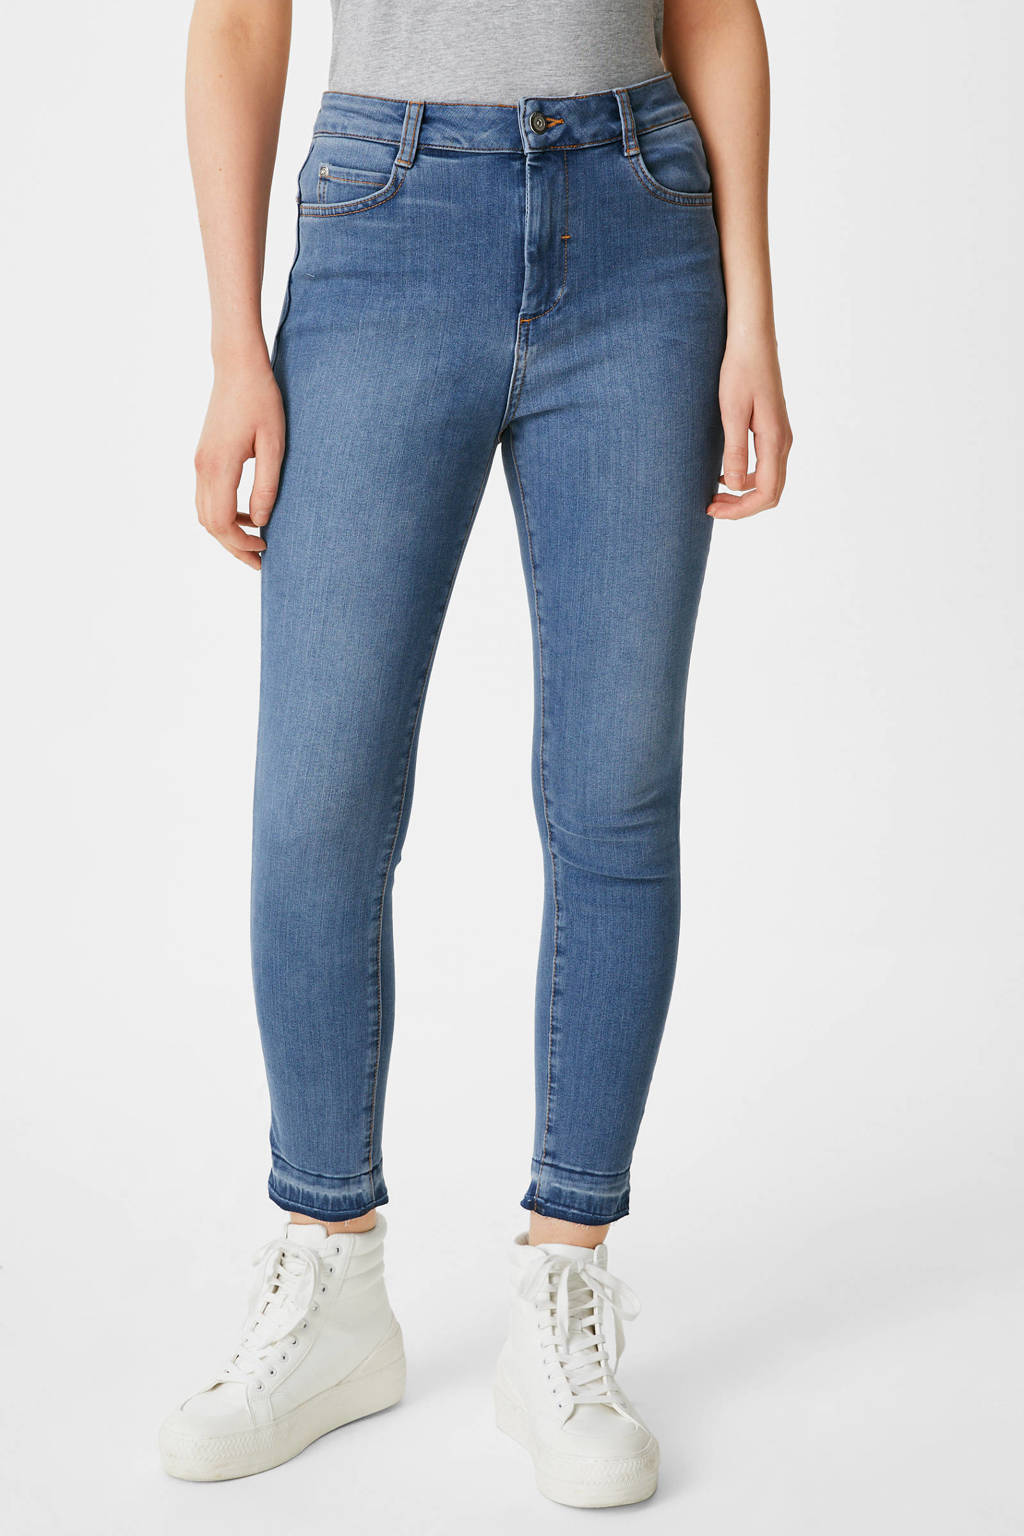 C&A Yessica cropped slim fit jeans blauw, Blauw